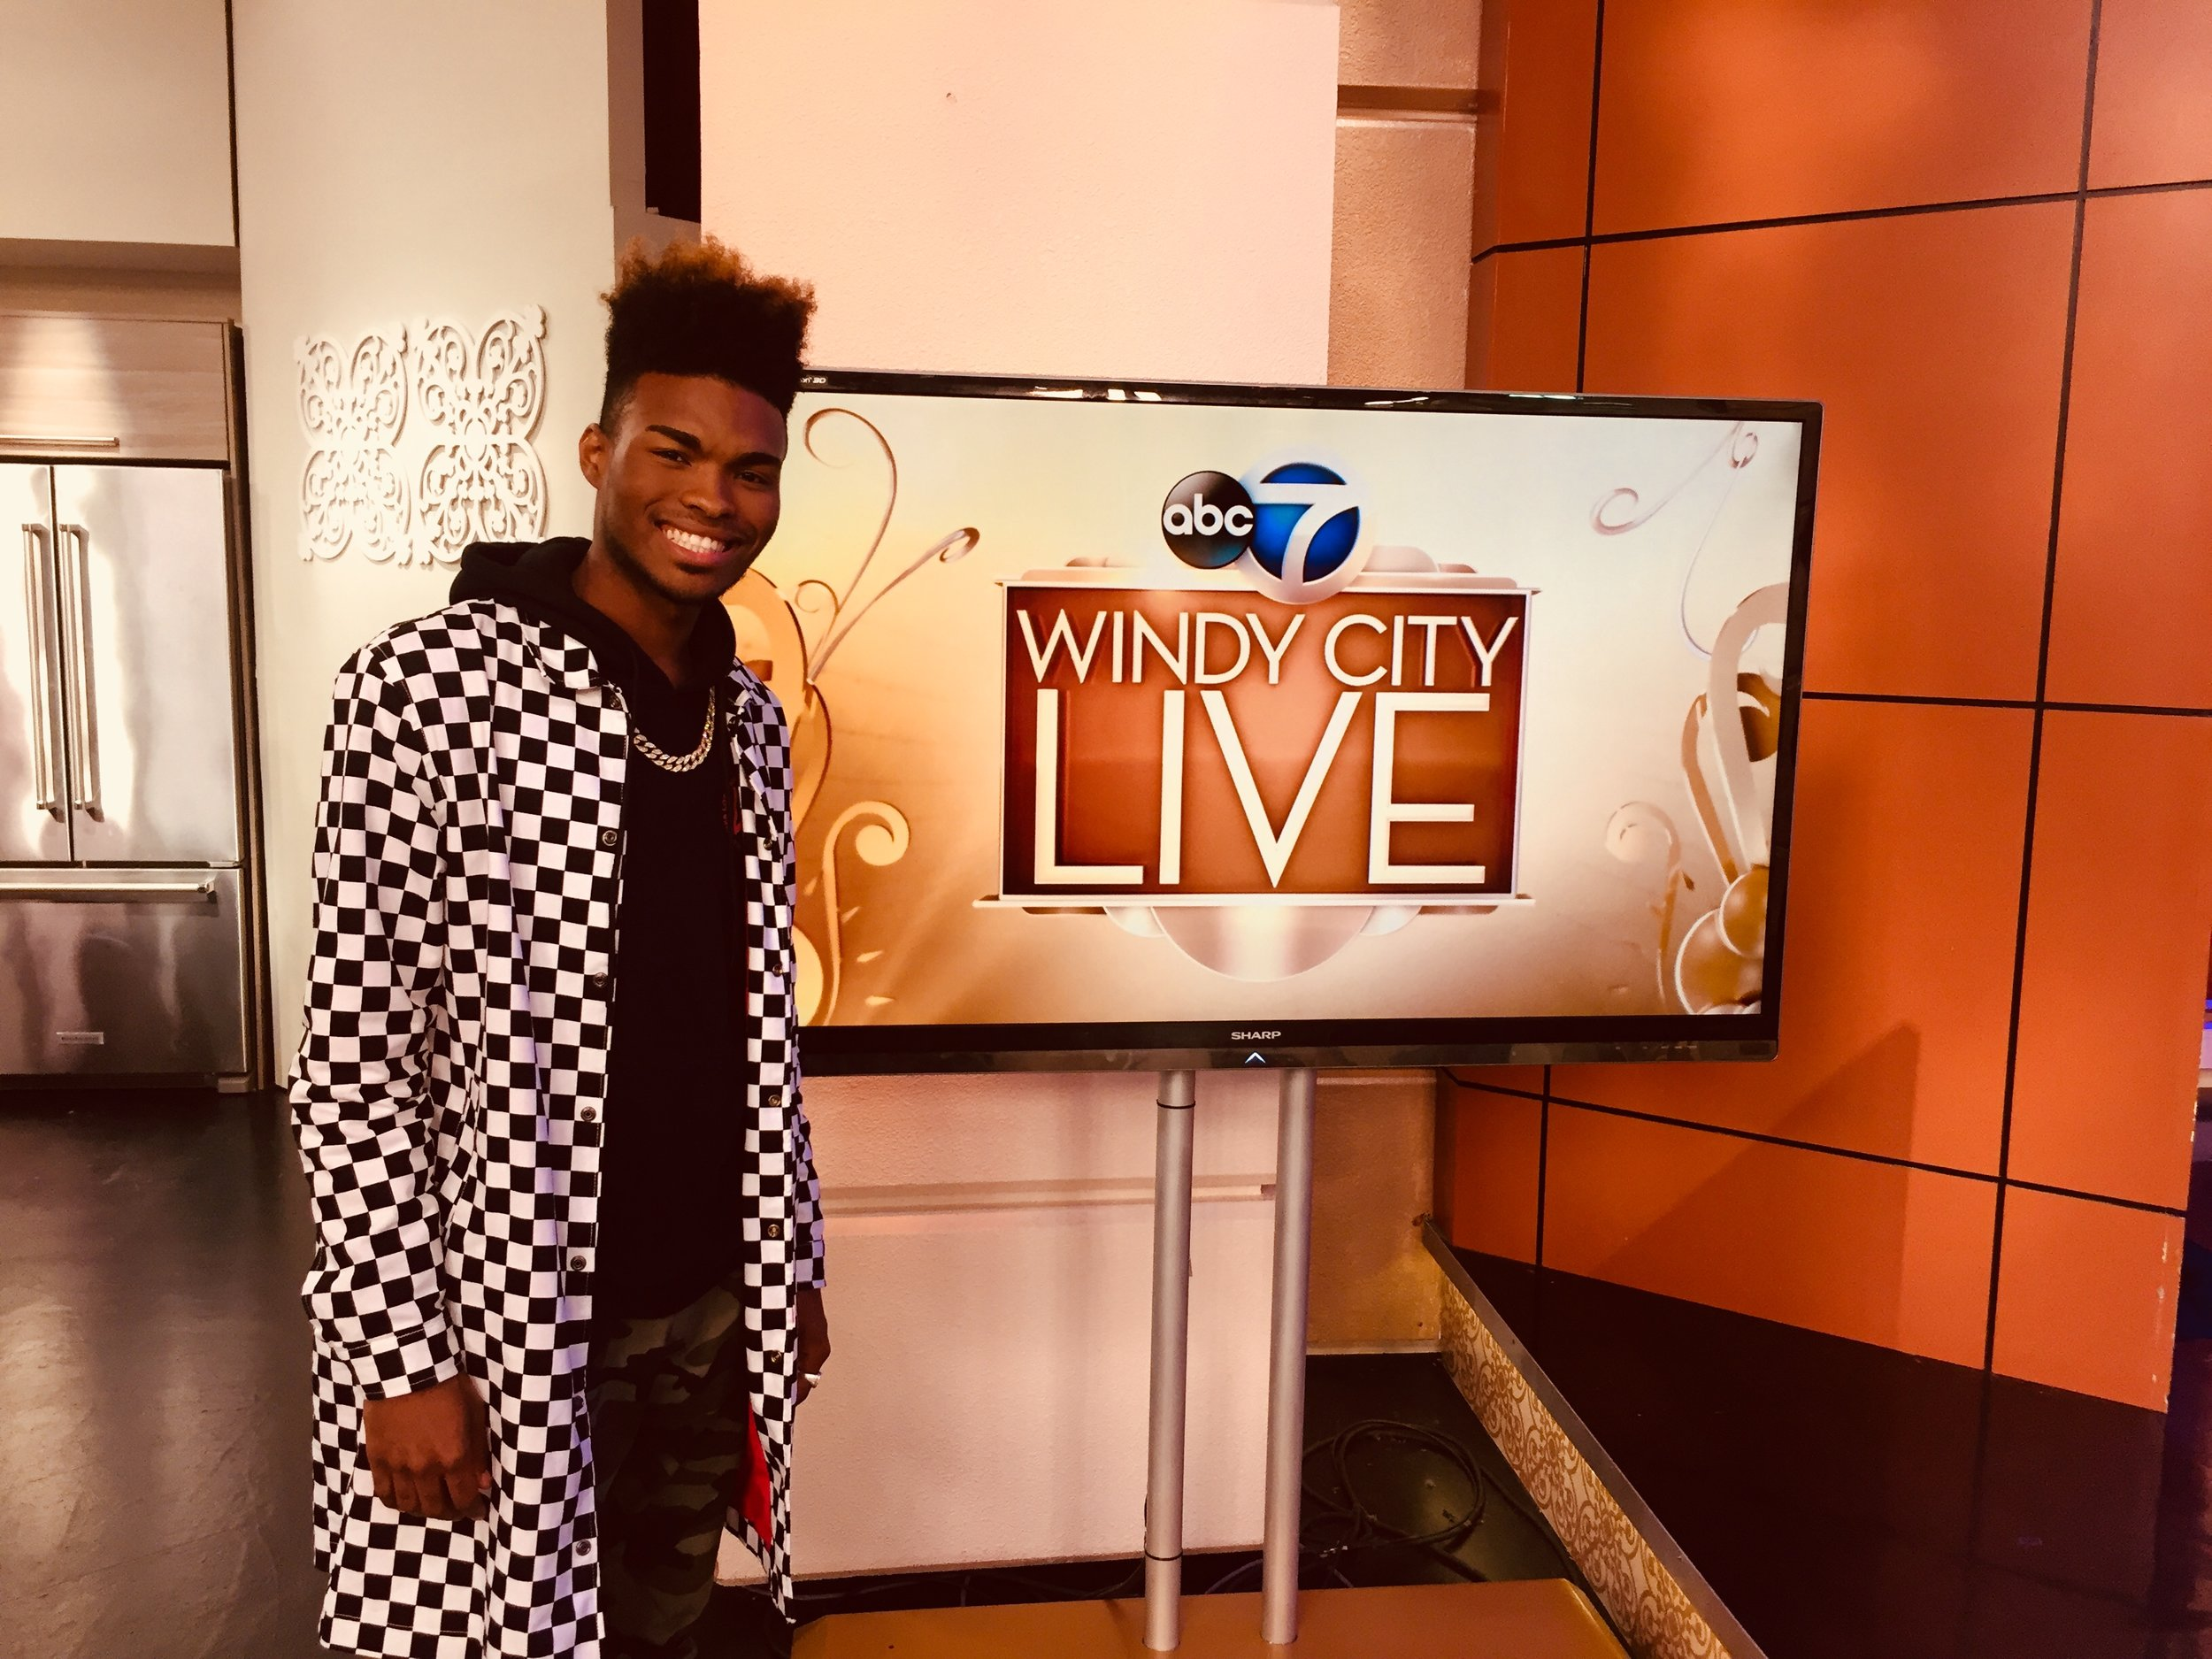 Magic Music Management Atlanta Jibrizy Windy City Live 2.JPG